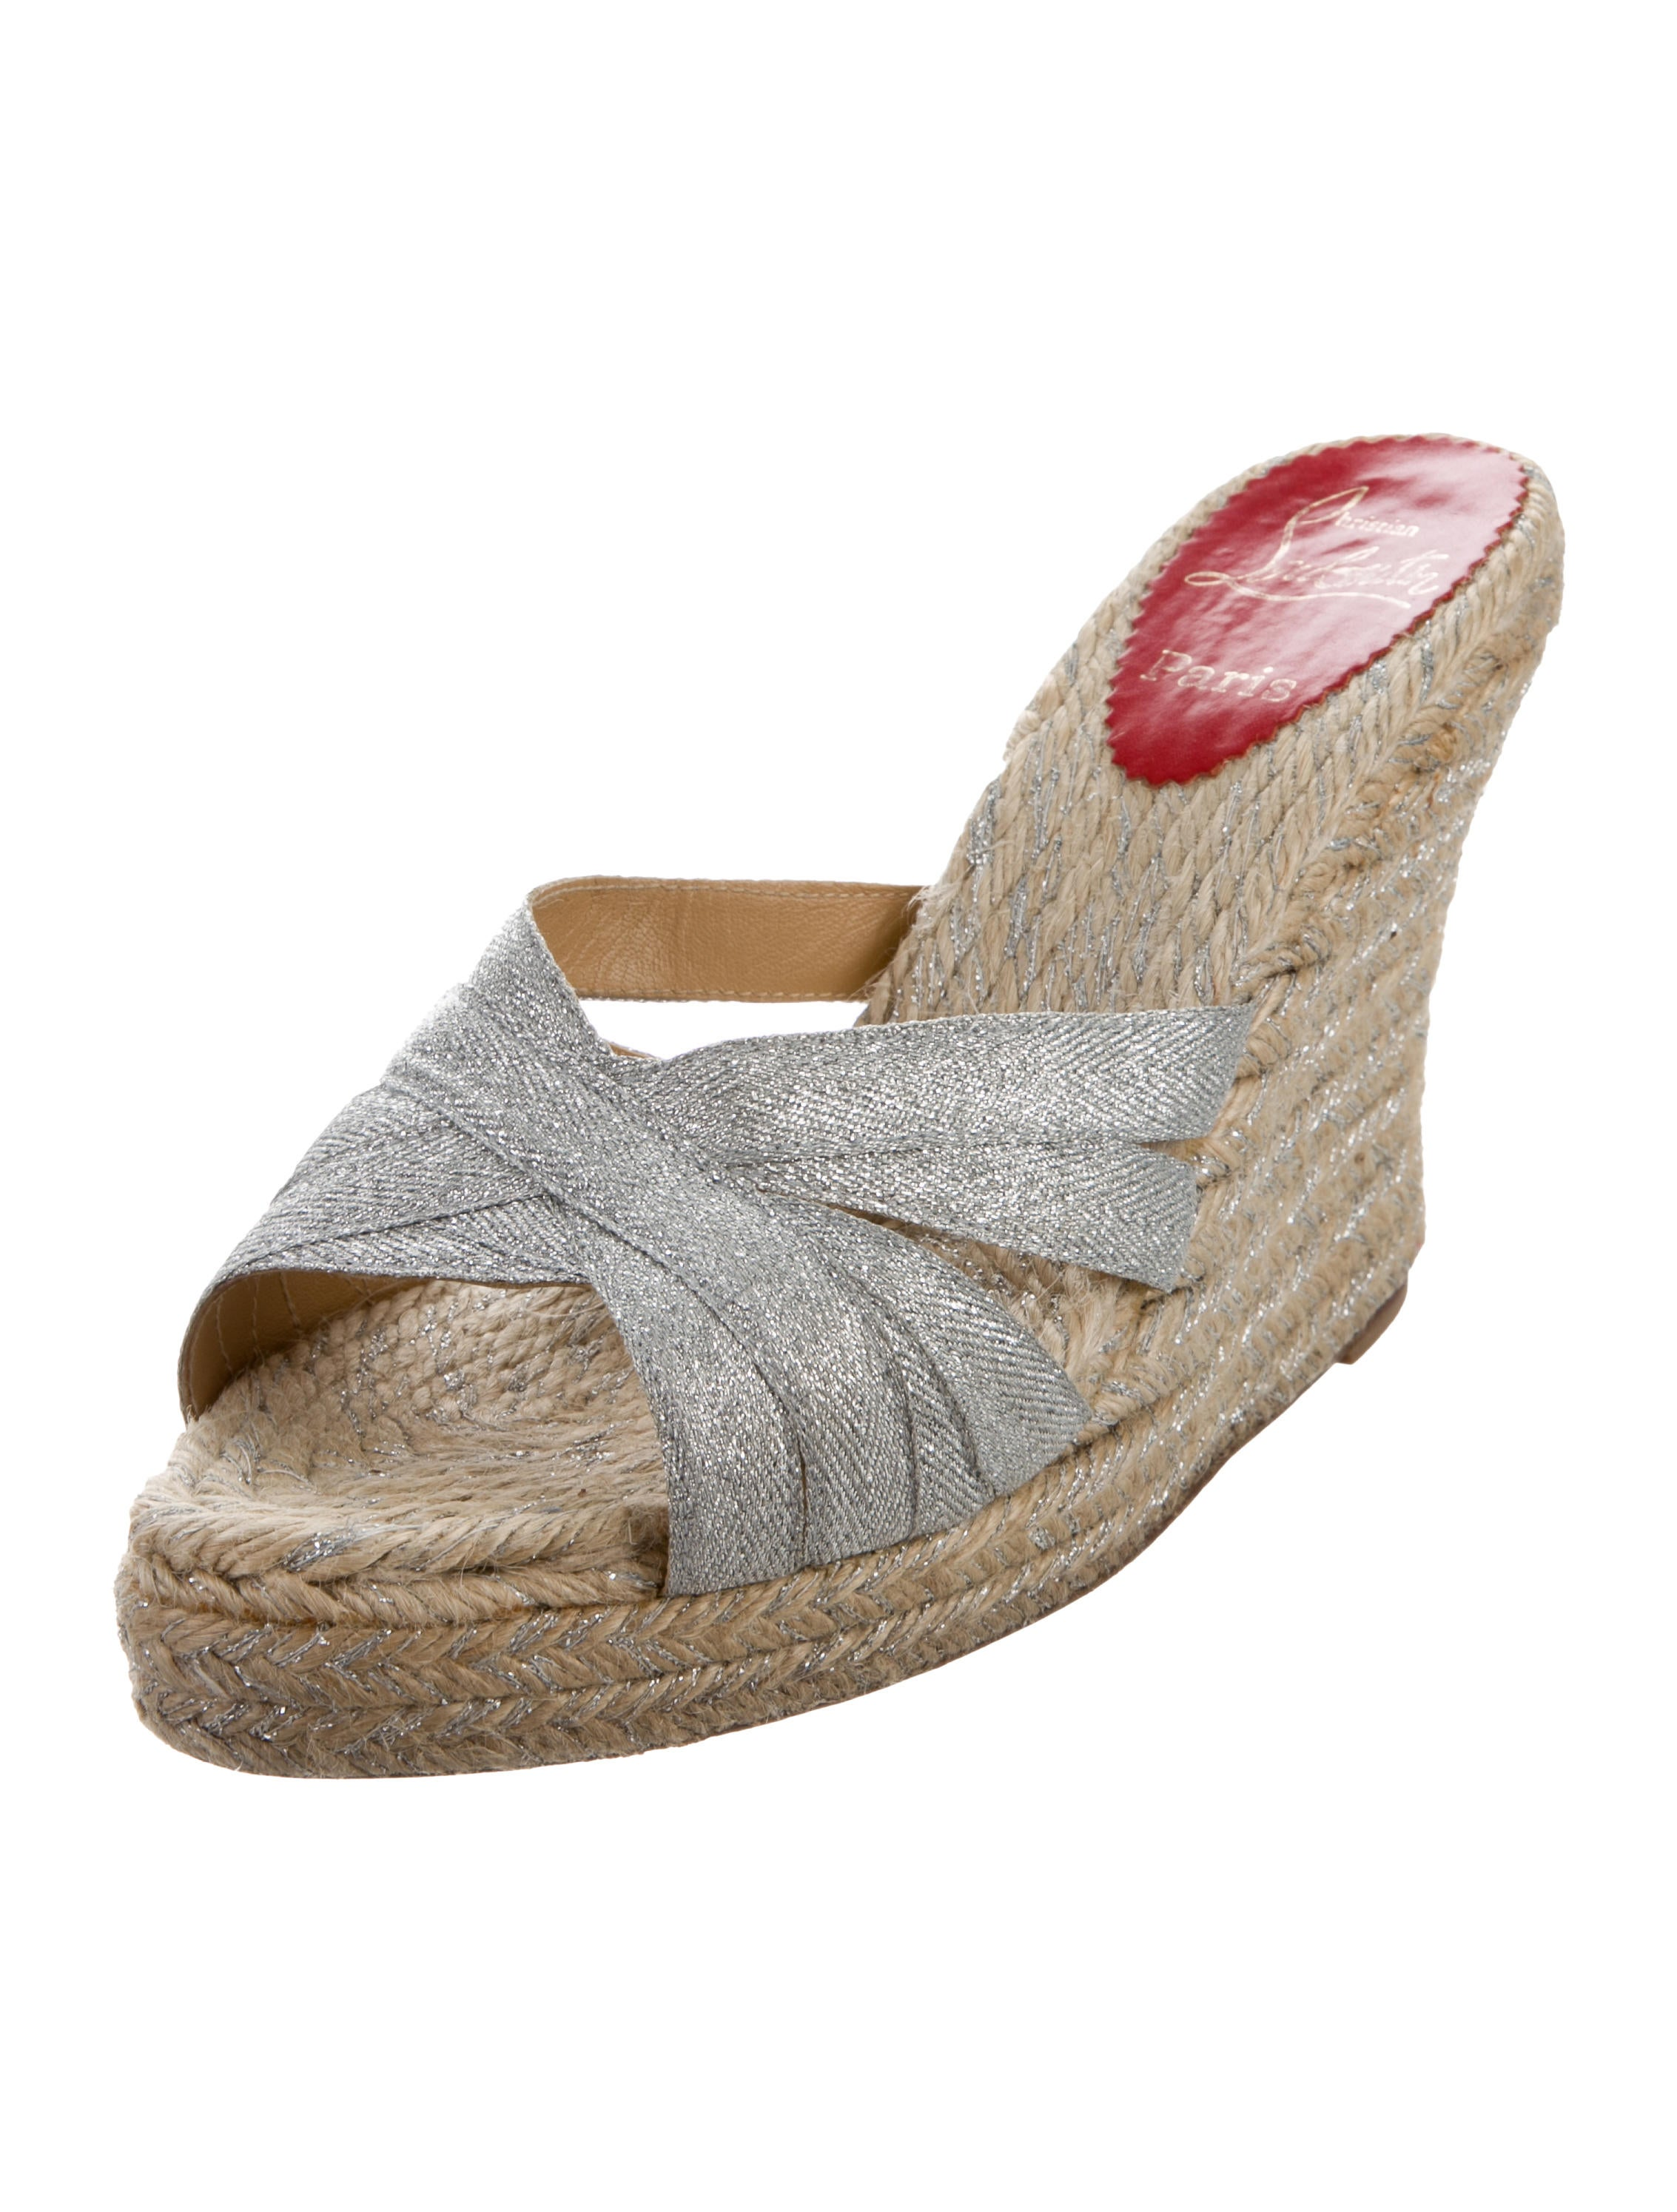 7e4665c0b4de Christian Louboutin Cataribbon Espadrille Wedges - Shoes - CHT100455 ...